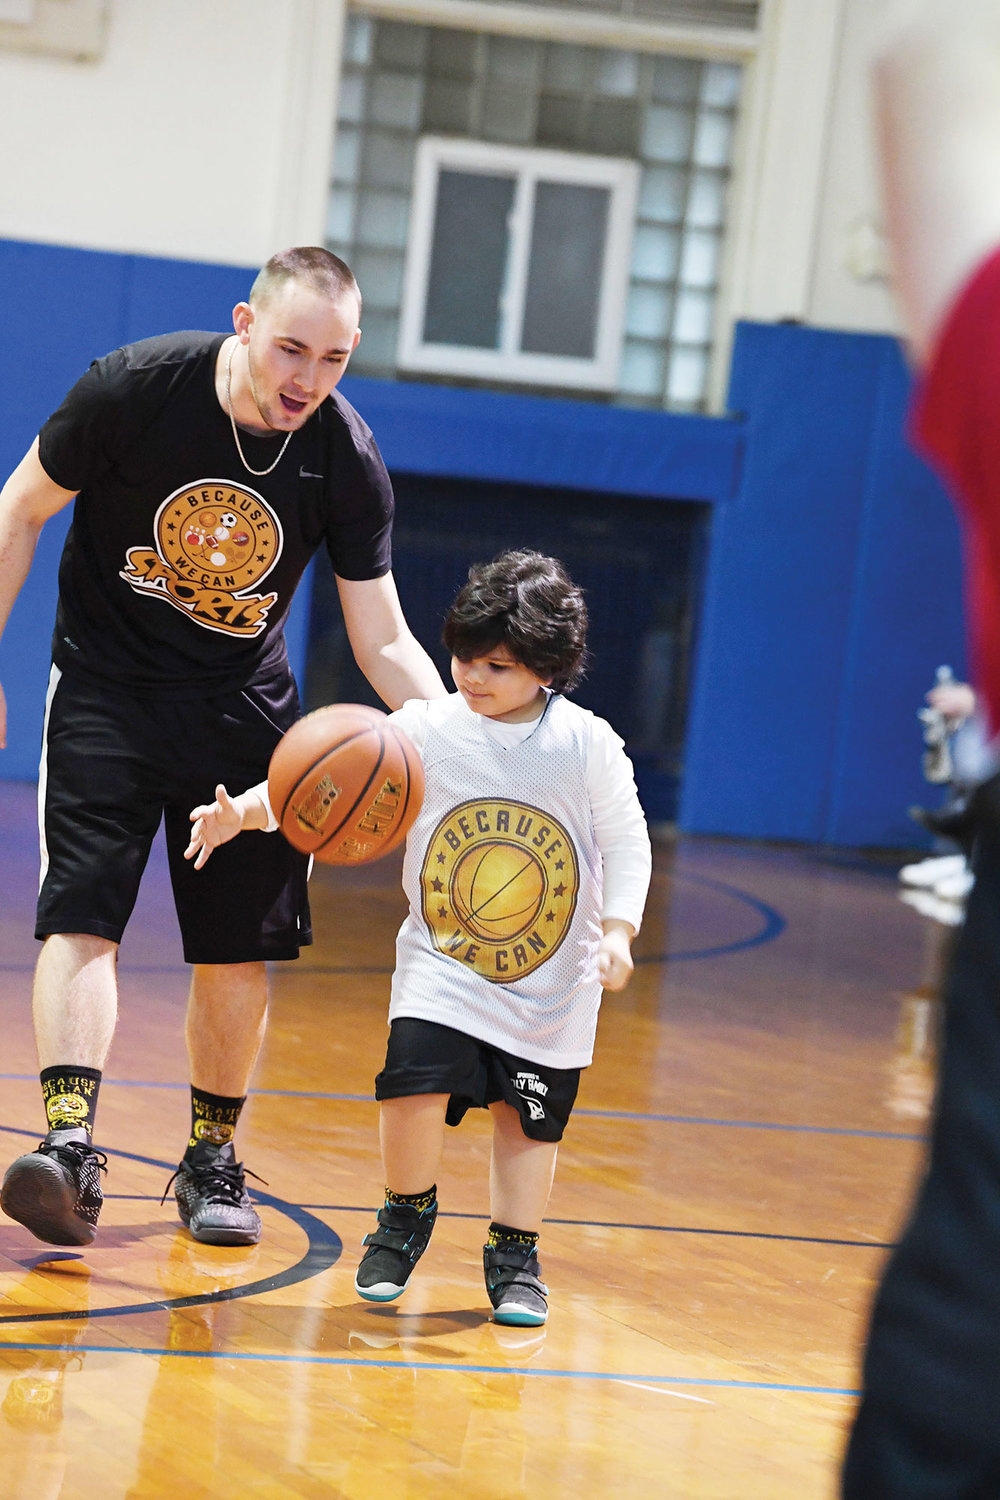 Sal Fabozzi, a head coach and founder of Because We Can Sports, instructs a player during the game.